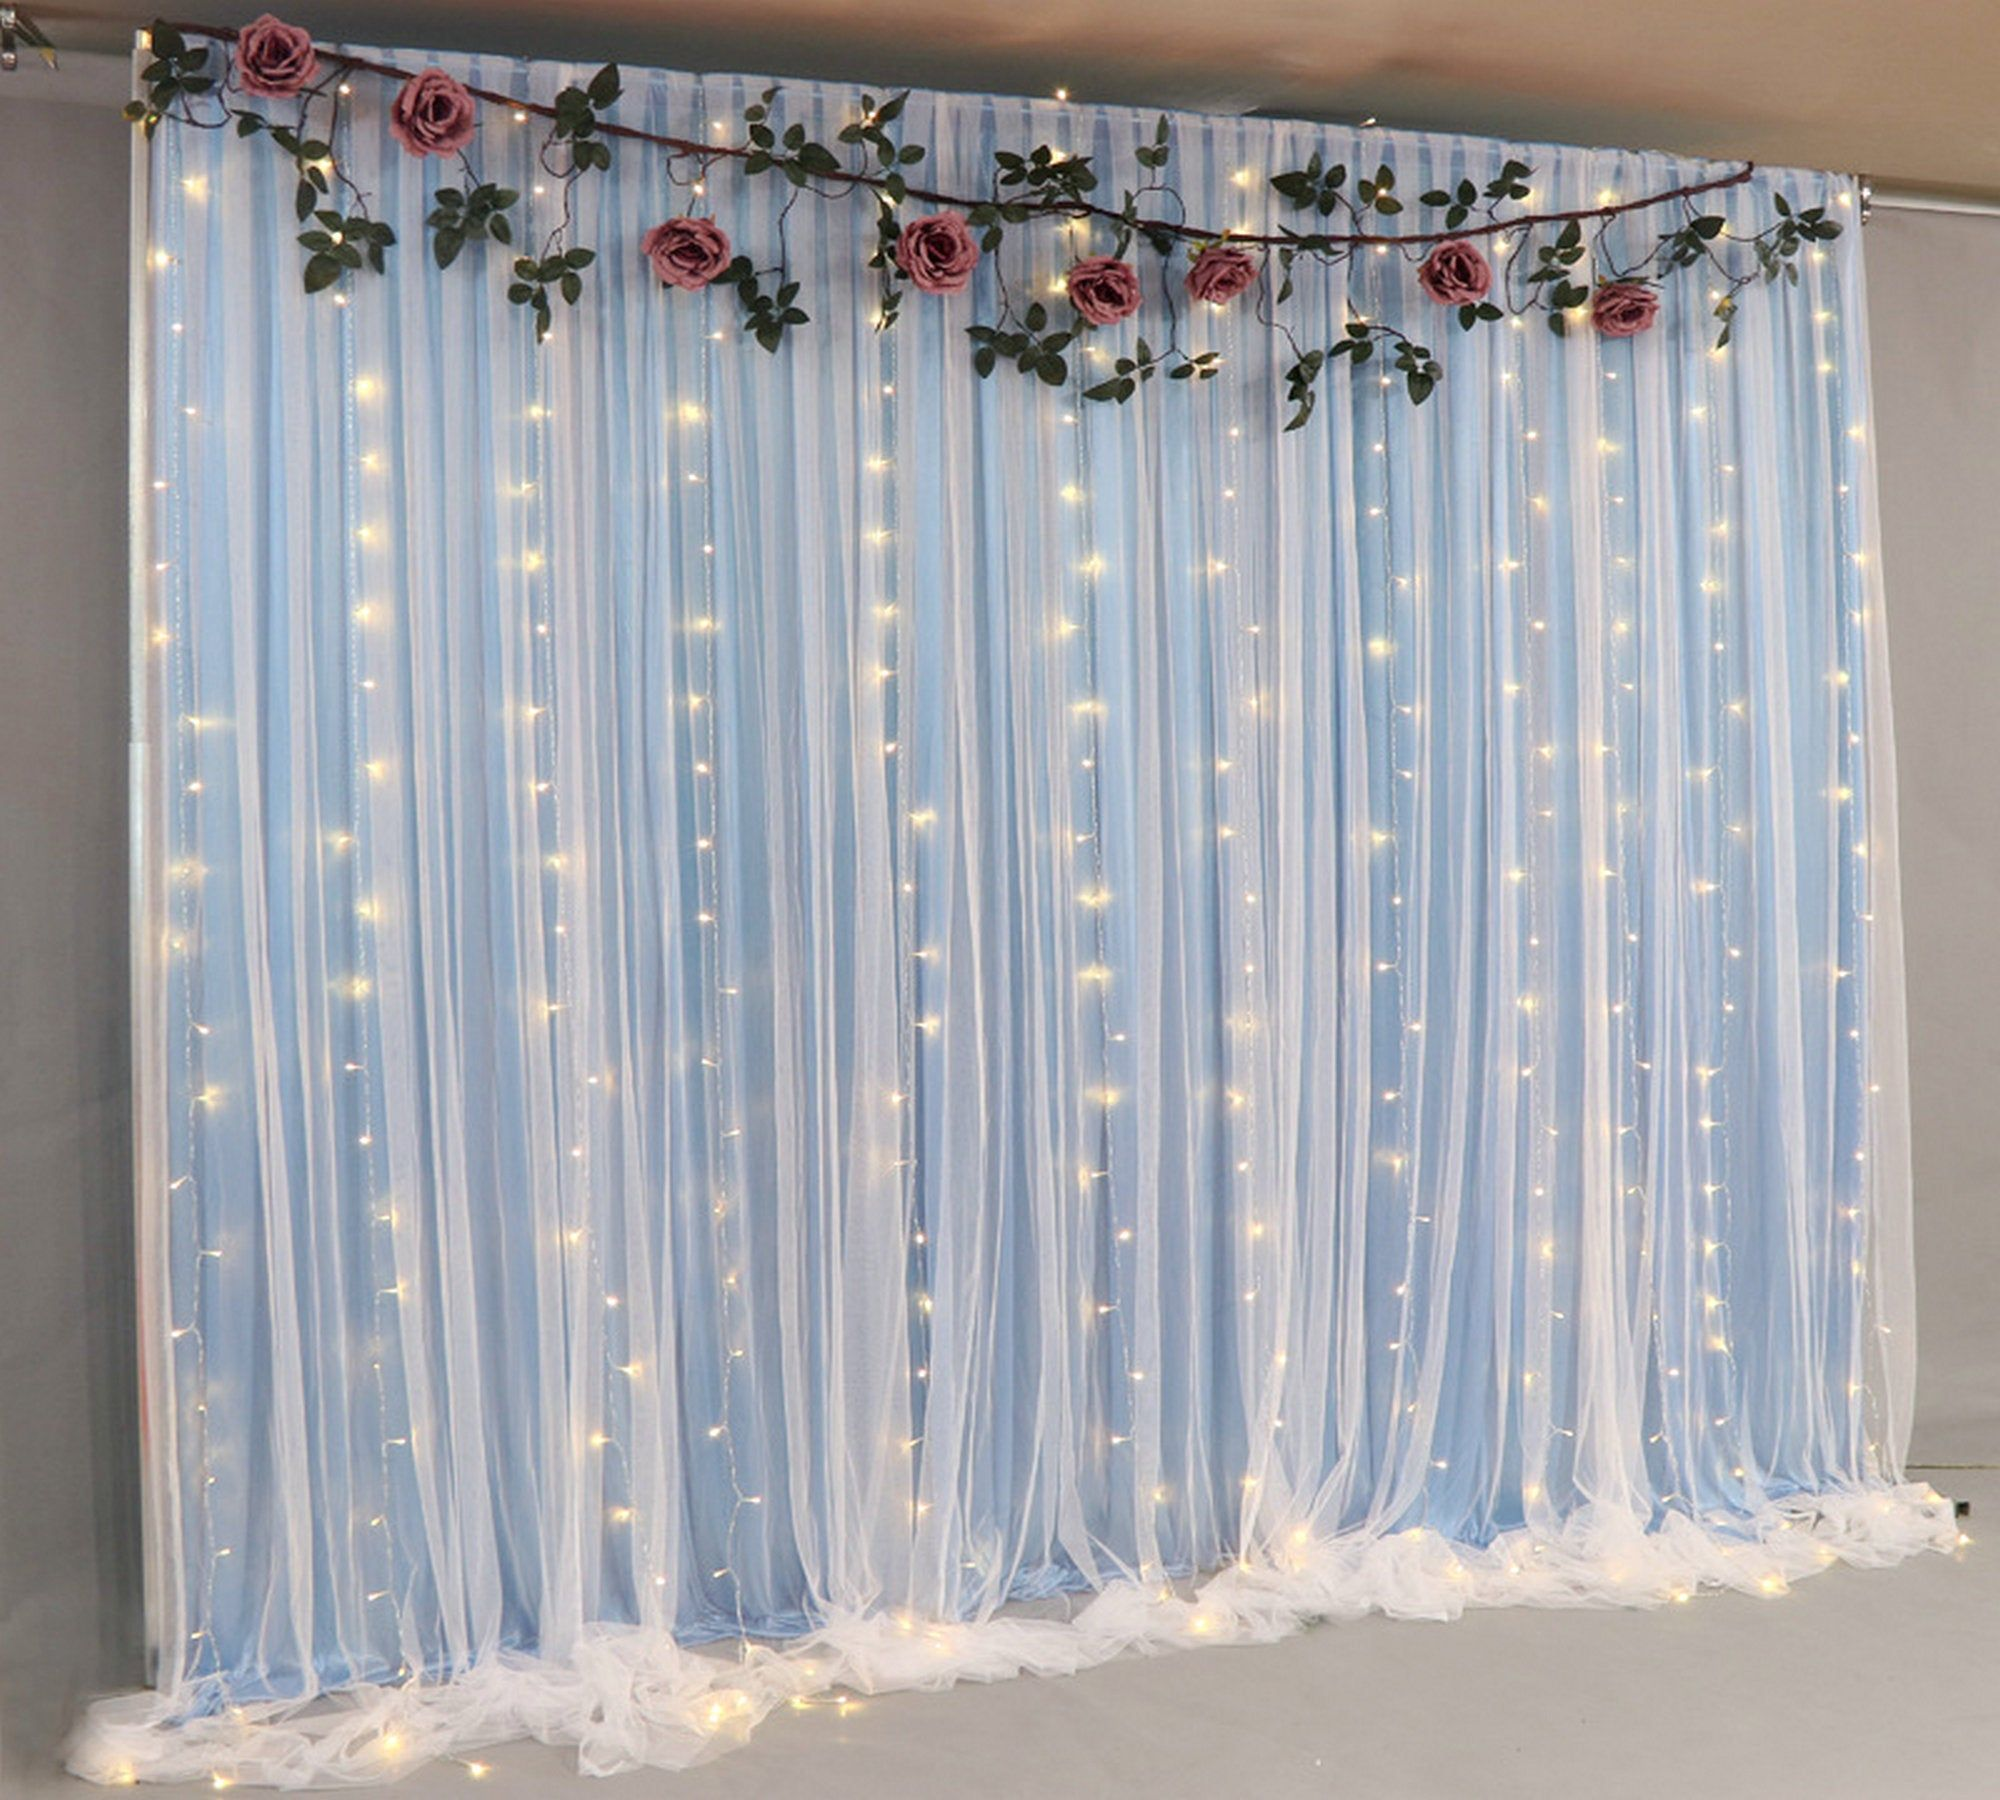 Custom Photo Booth Backdrop Wedding Baby Shower Backdrop Party